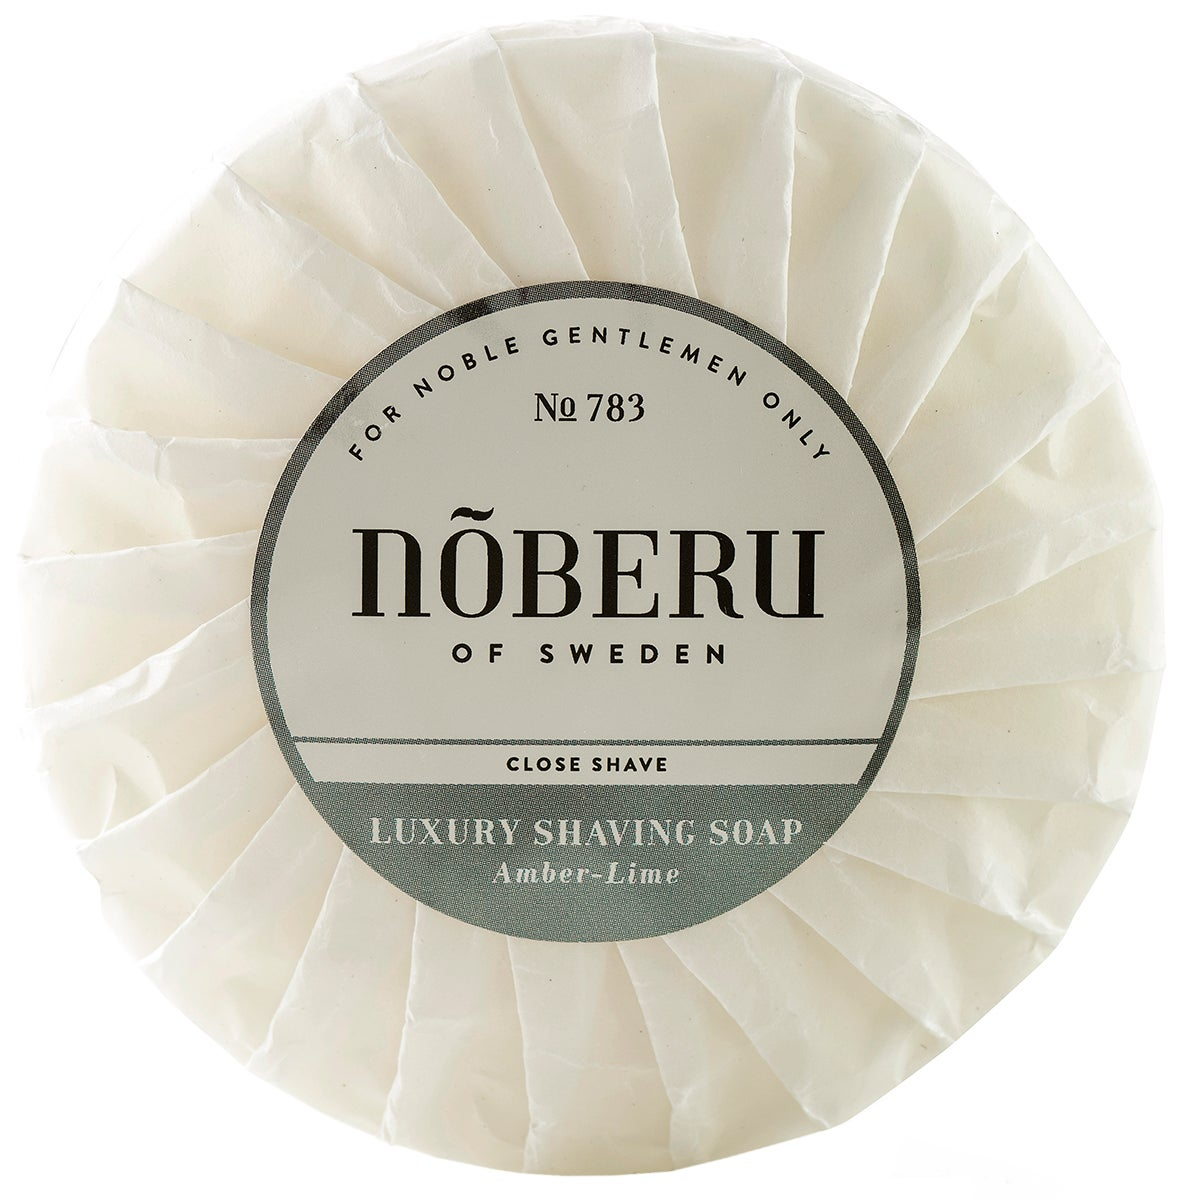 Nõberu of Sweden Nõberu Luxury Shaving Soap